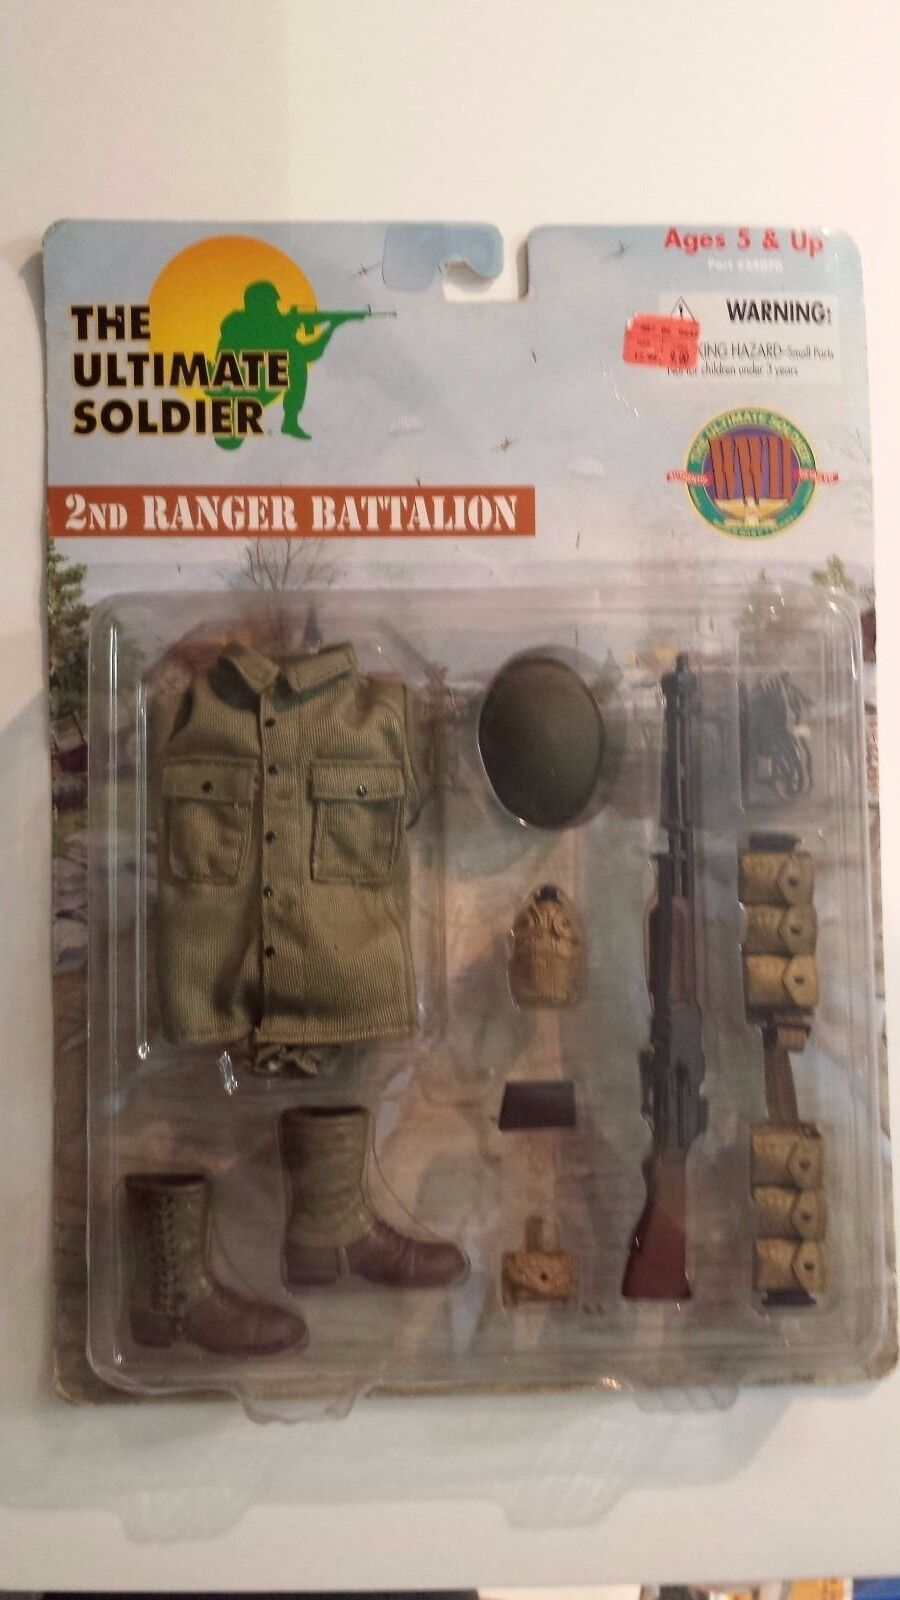 The Ultimate Soldier  2nd Ranger Battalion Weapon and Gear Gear Gear Set 144995